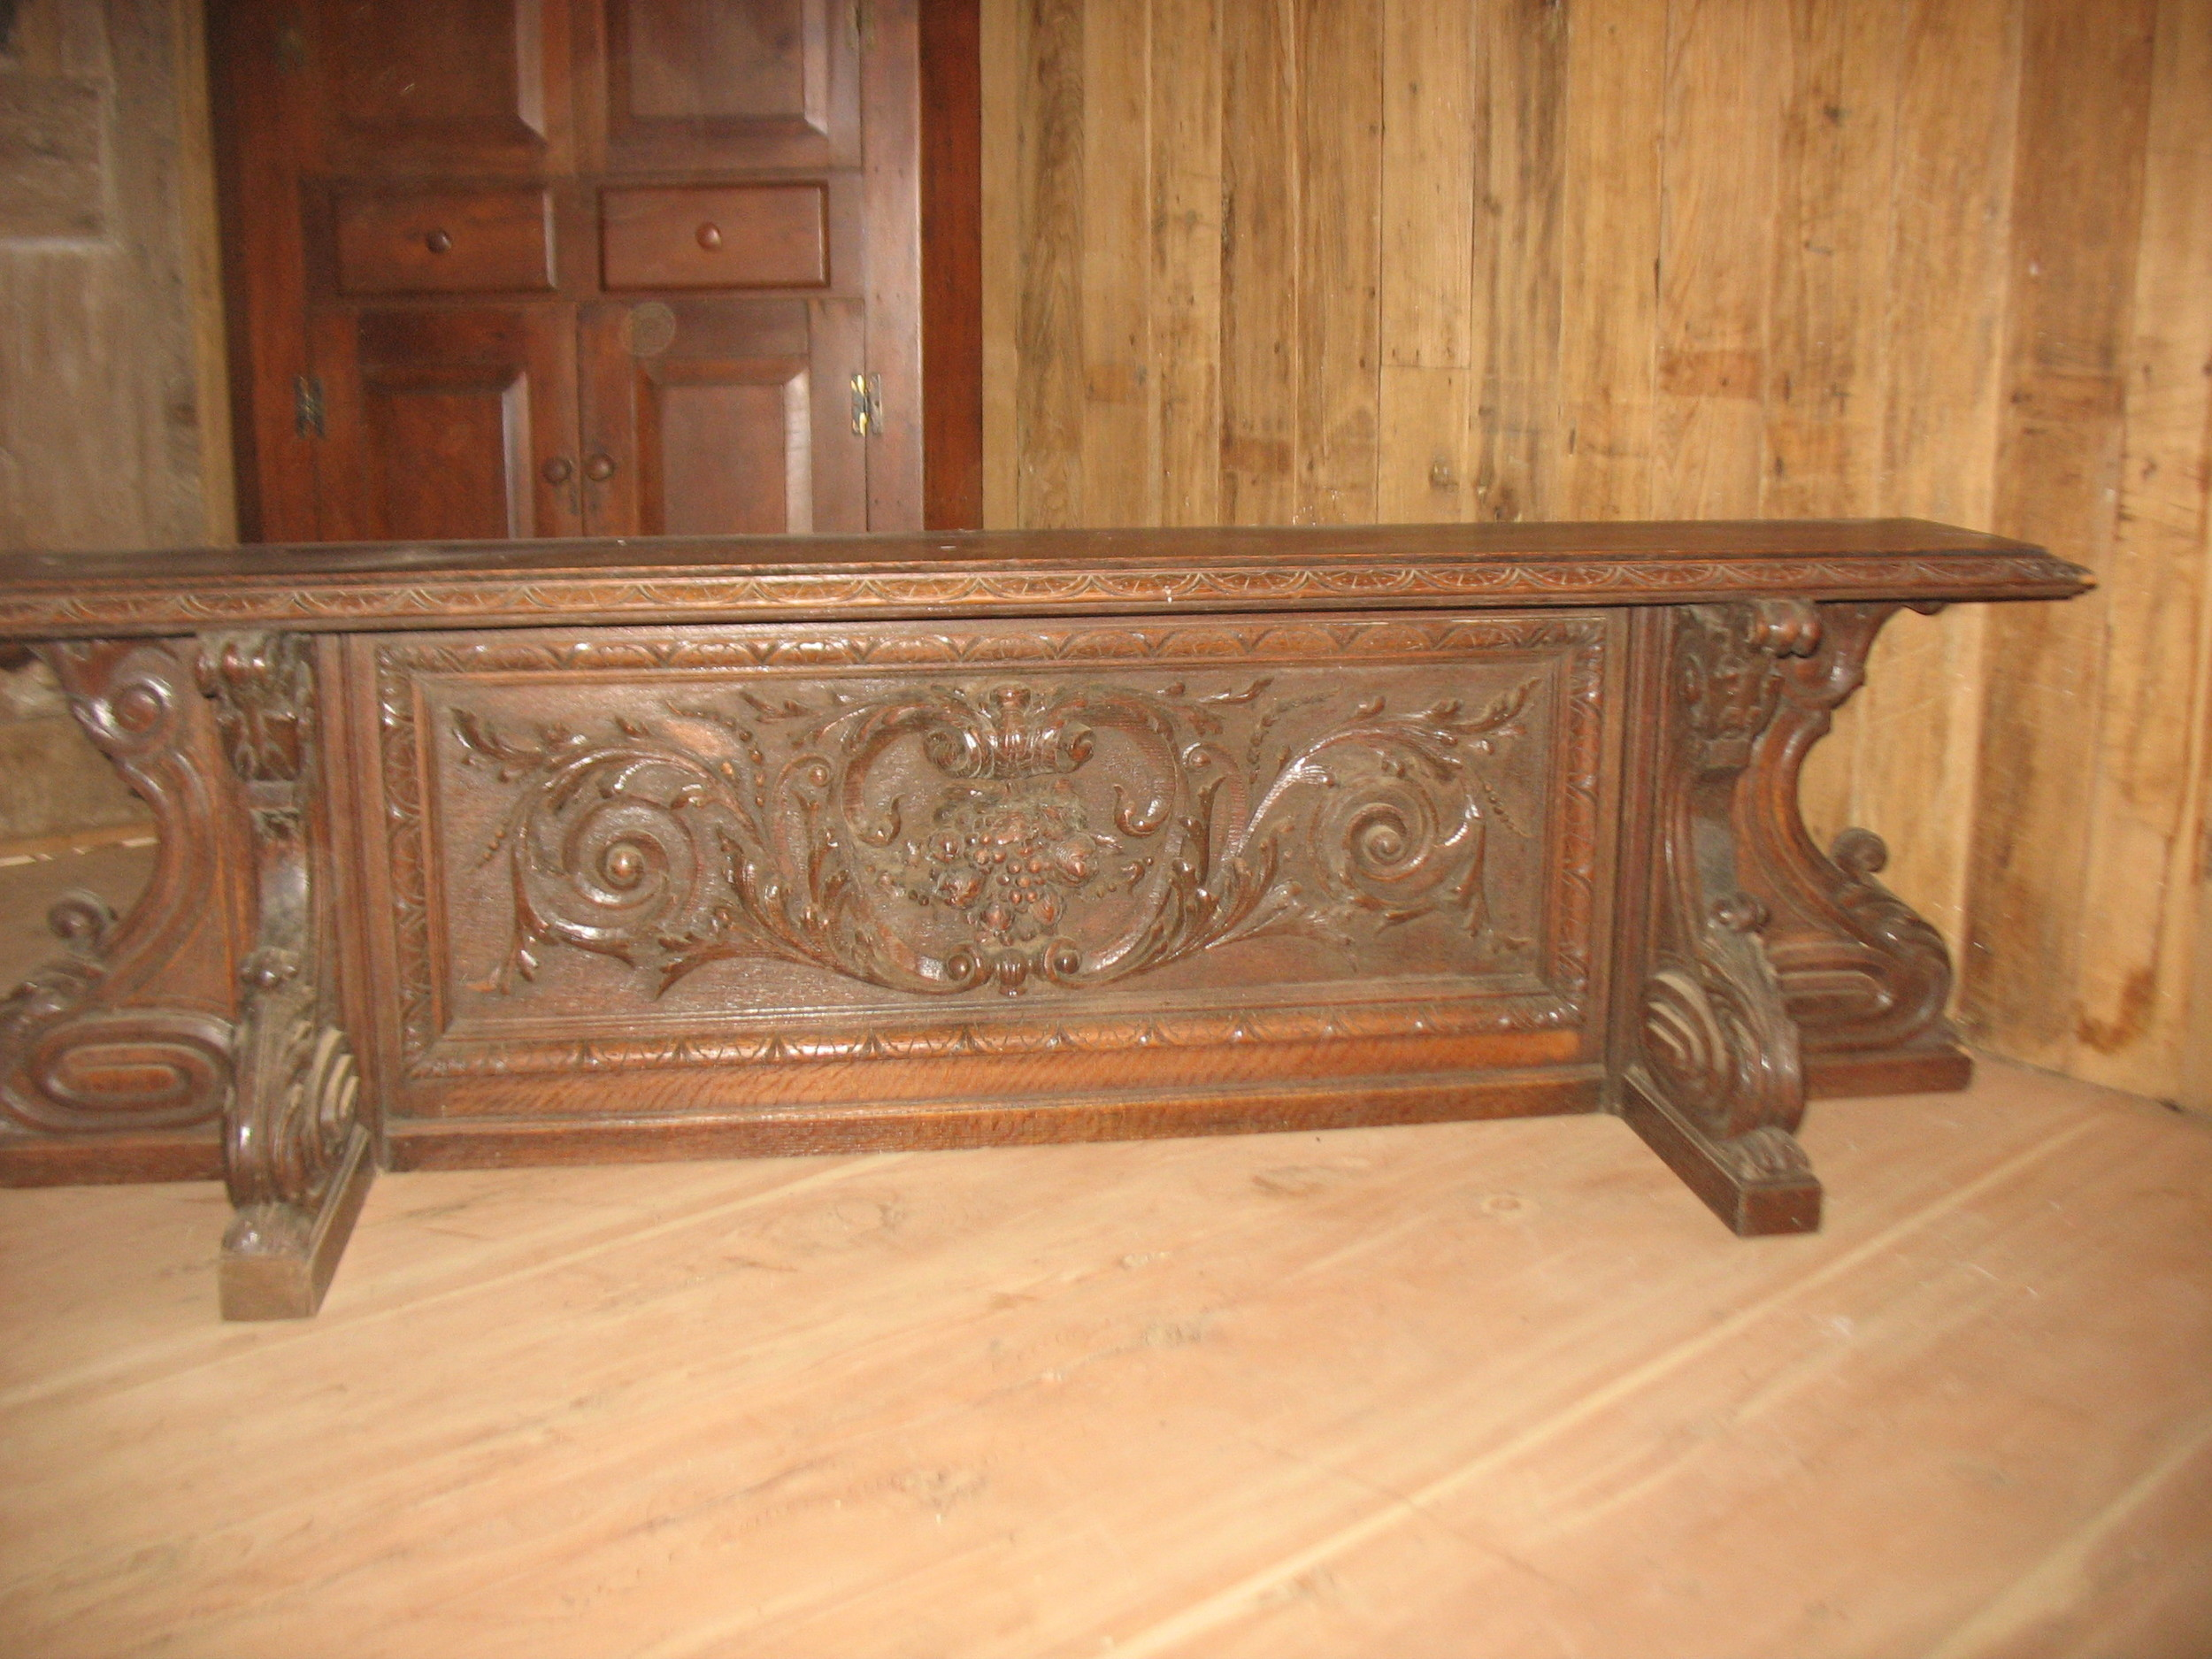 If you want an unusual piece this fills the order. Beautifully carved Victorian piece which measures 69 inches long X 16 inches wide from front to back and 22 inches tall. The shelf on top is18 inches wide. I used it at the end of my bed with pillows, but it can be hung as a shelf or as a seat with pillows or a cushion. Absolutely beautiful in detail.    Price: upon request